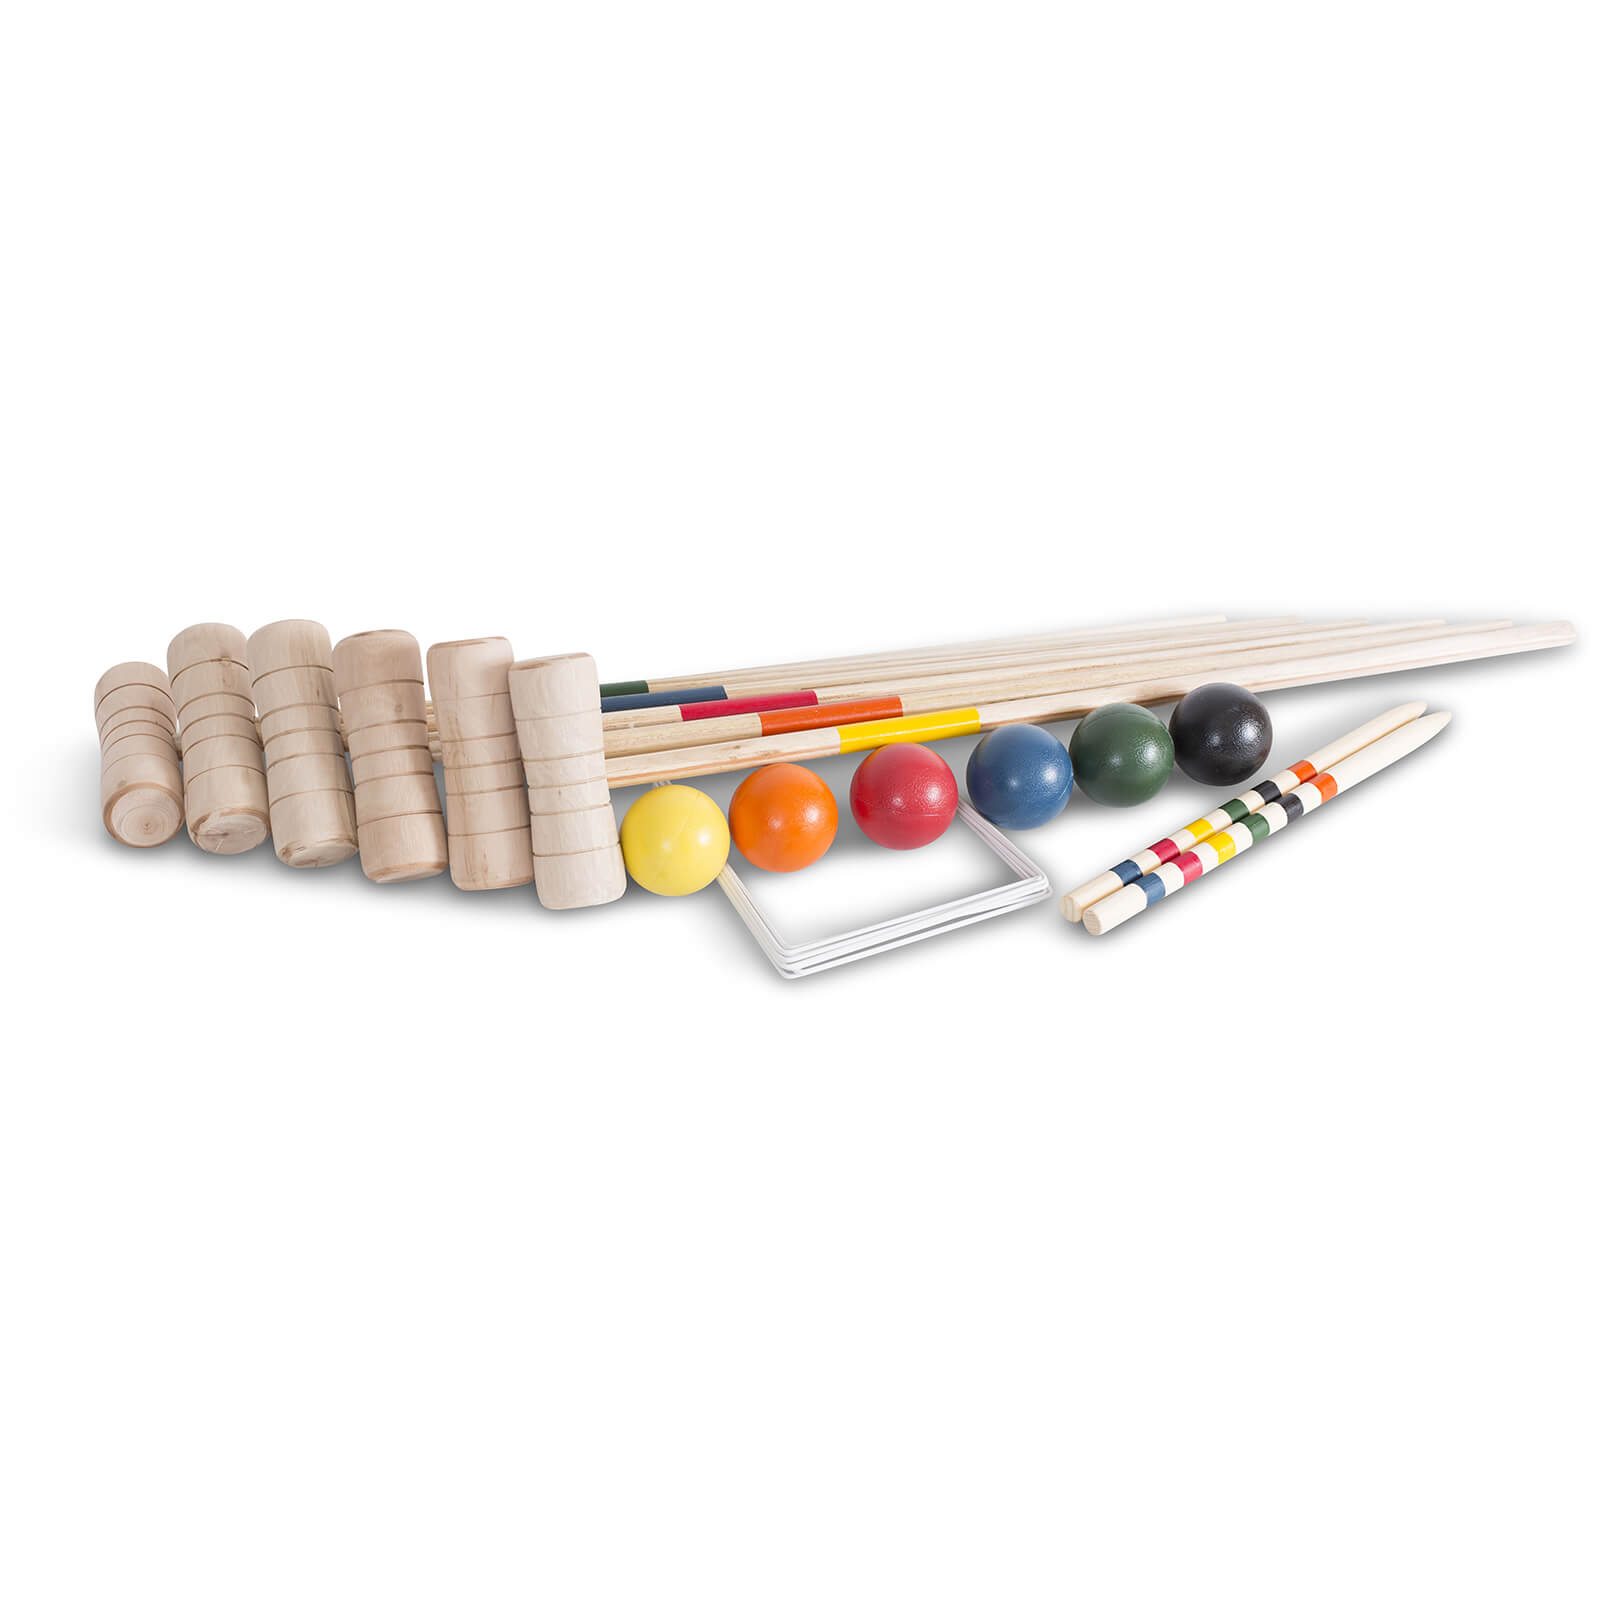 BEX 6 Mallet Family Croquet Set